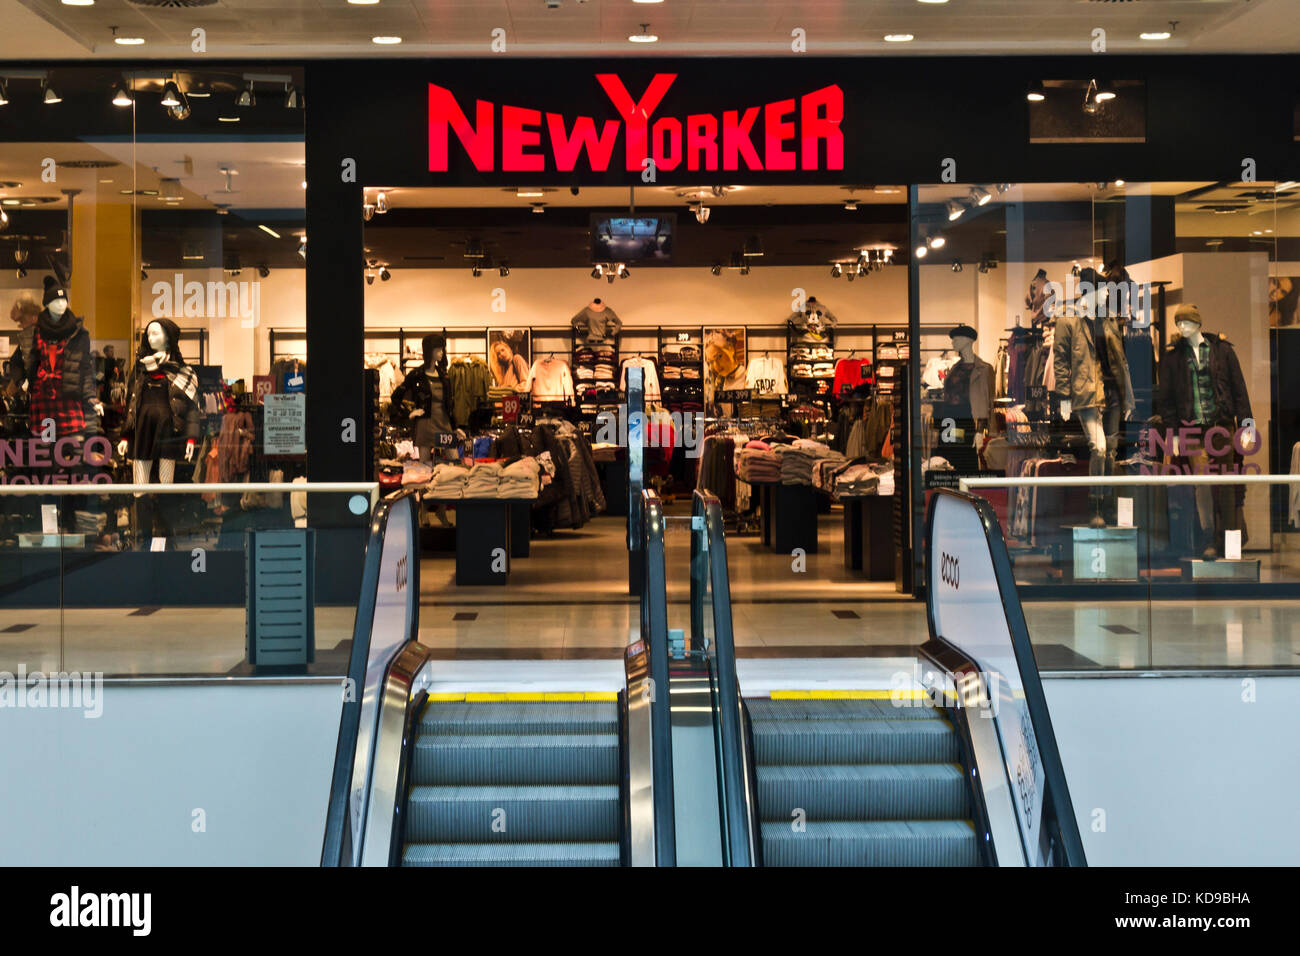 New yorker clothes online shop